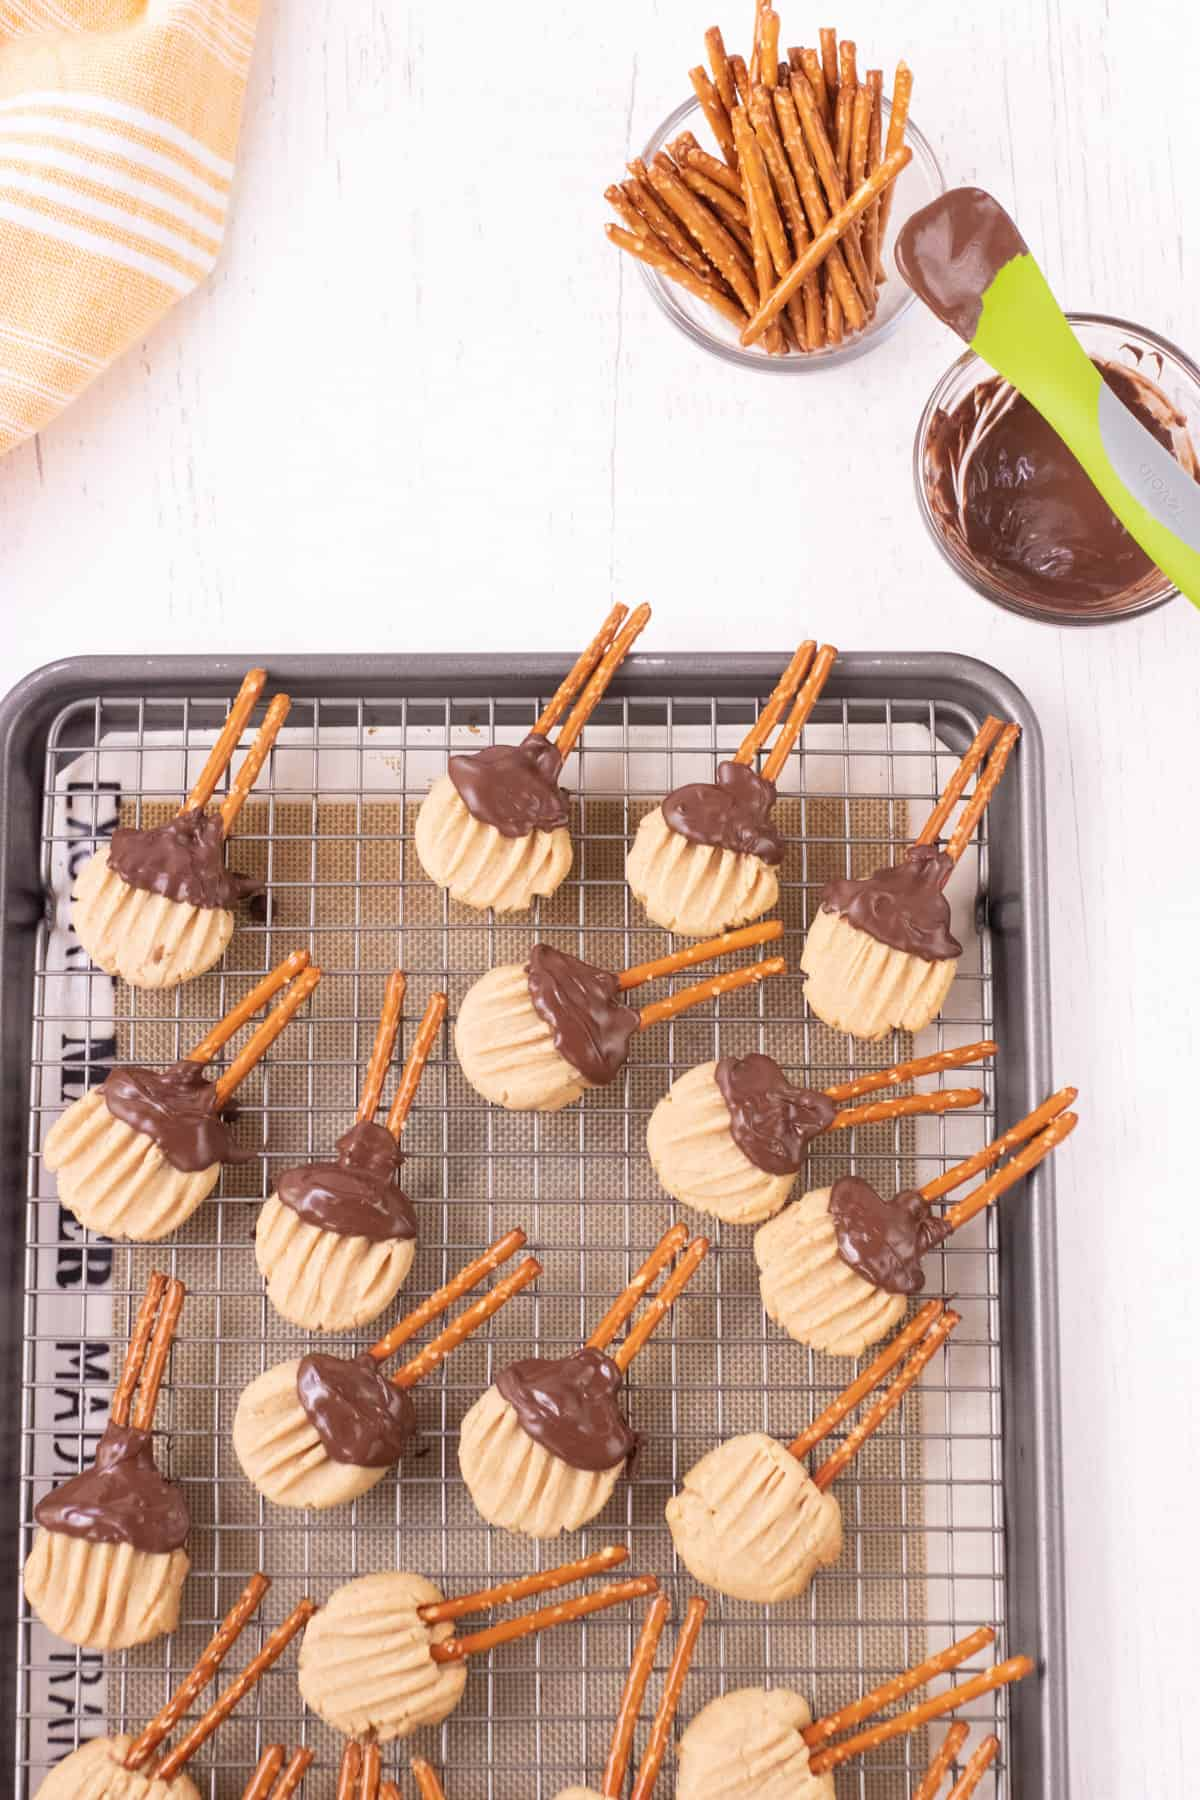 Brown sugar shortbread cookies with pretzels and melted chocolate shaped like witches brooms all on a baking rack with melted chocolate and pretzels sticks and orange towel in upper backgrounds.